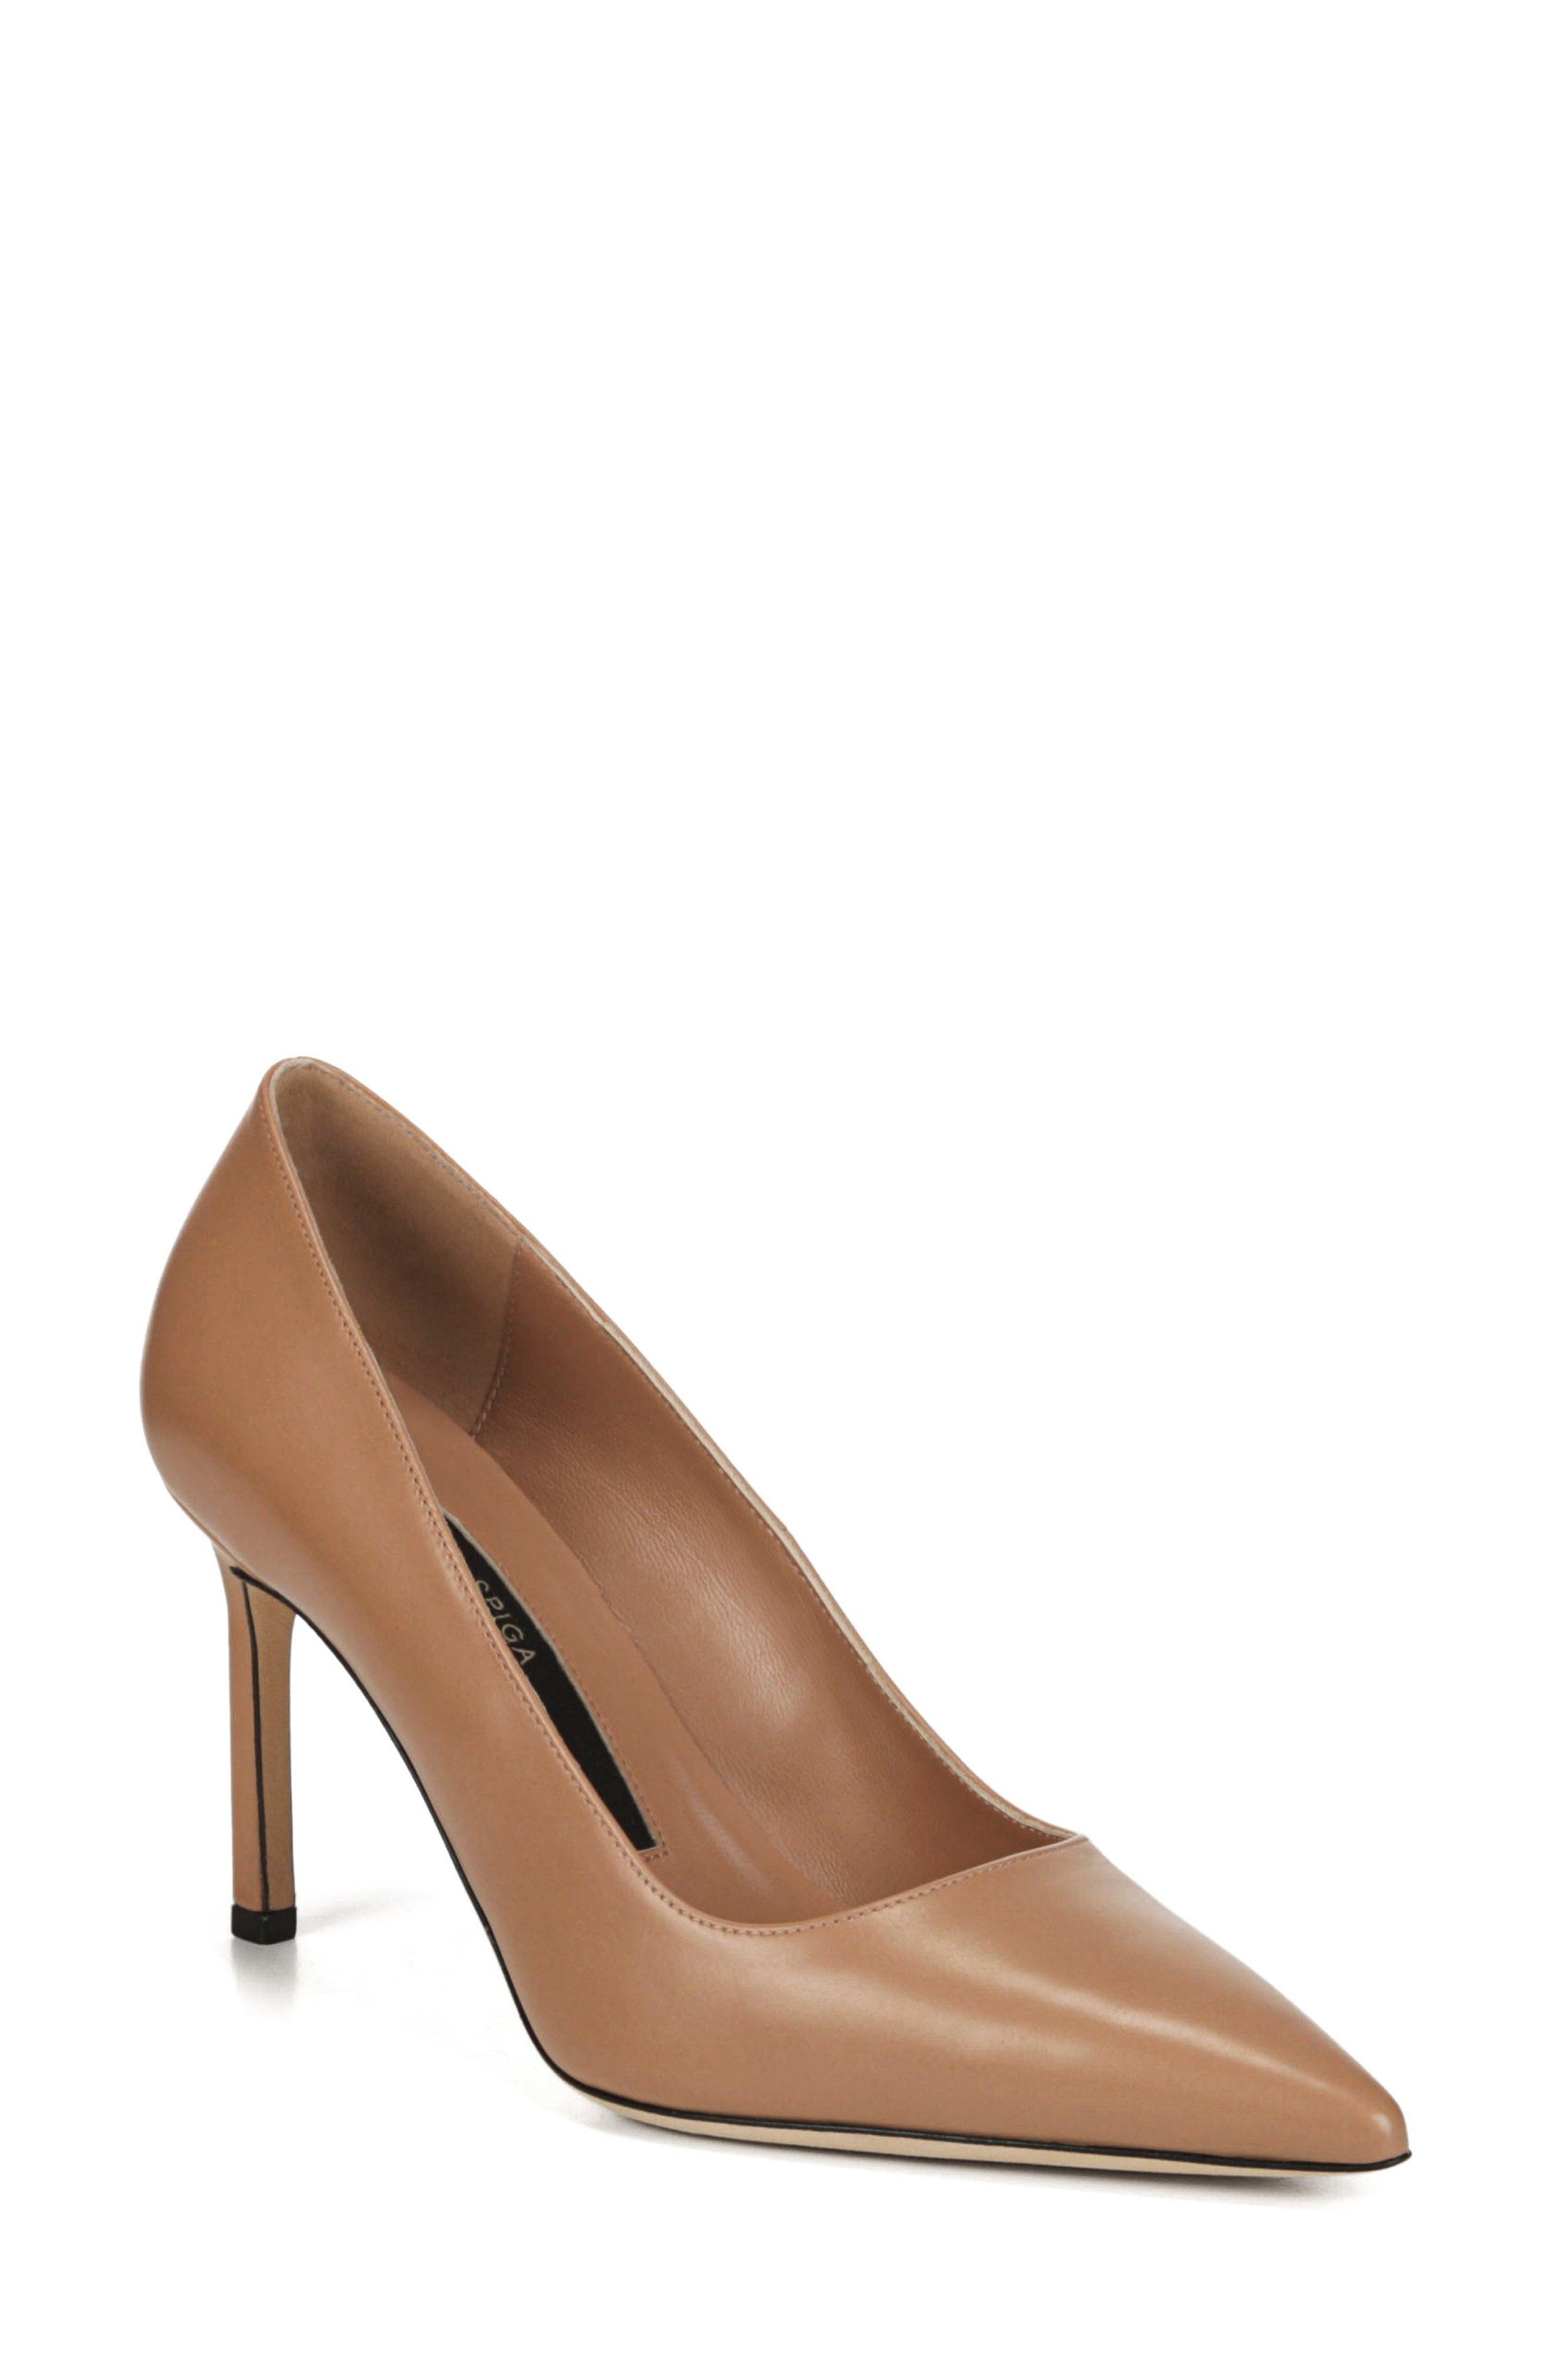 Nikole Pointy Toe Pump,                         Main,                         color, Desert Leather